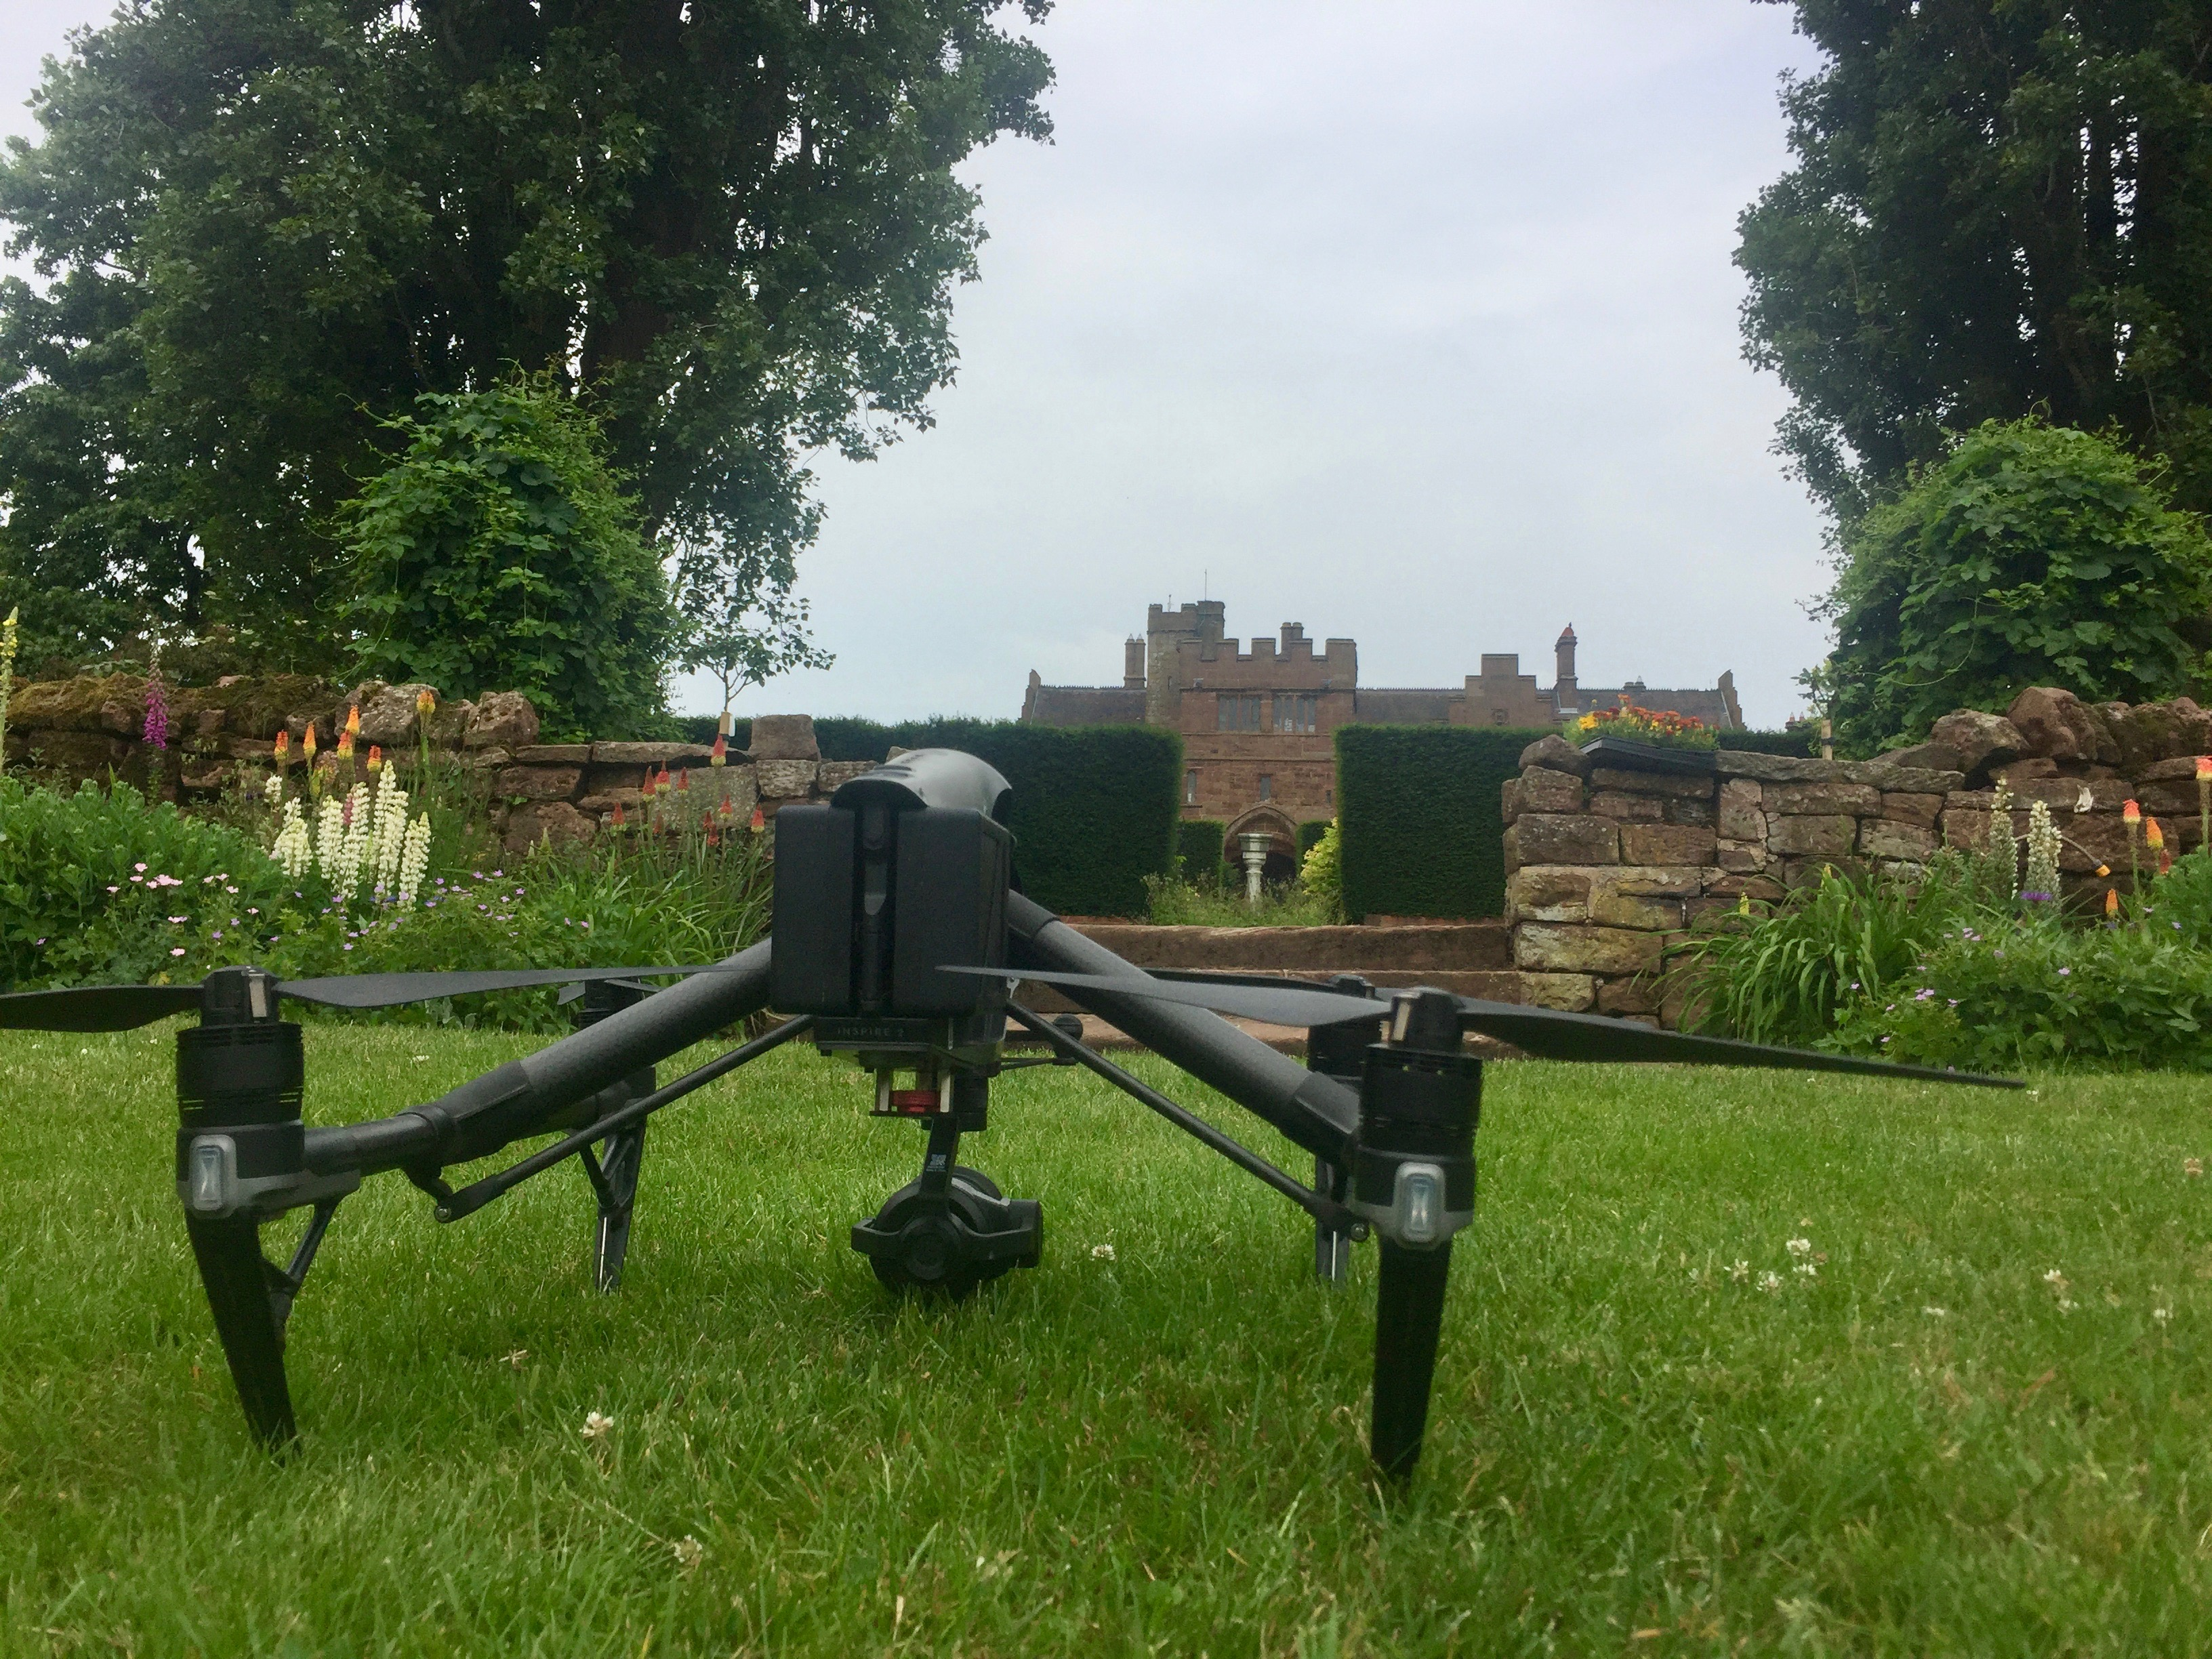 The Drone Code